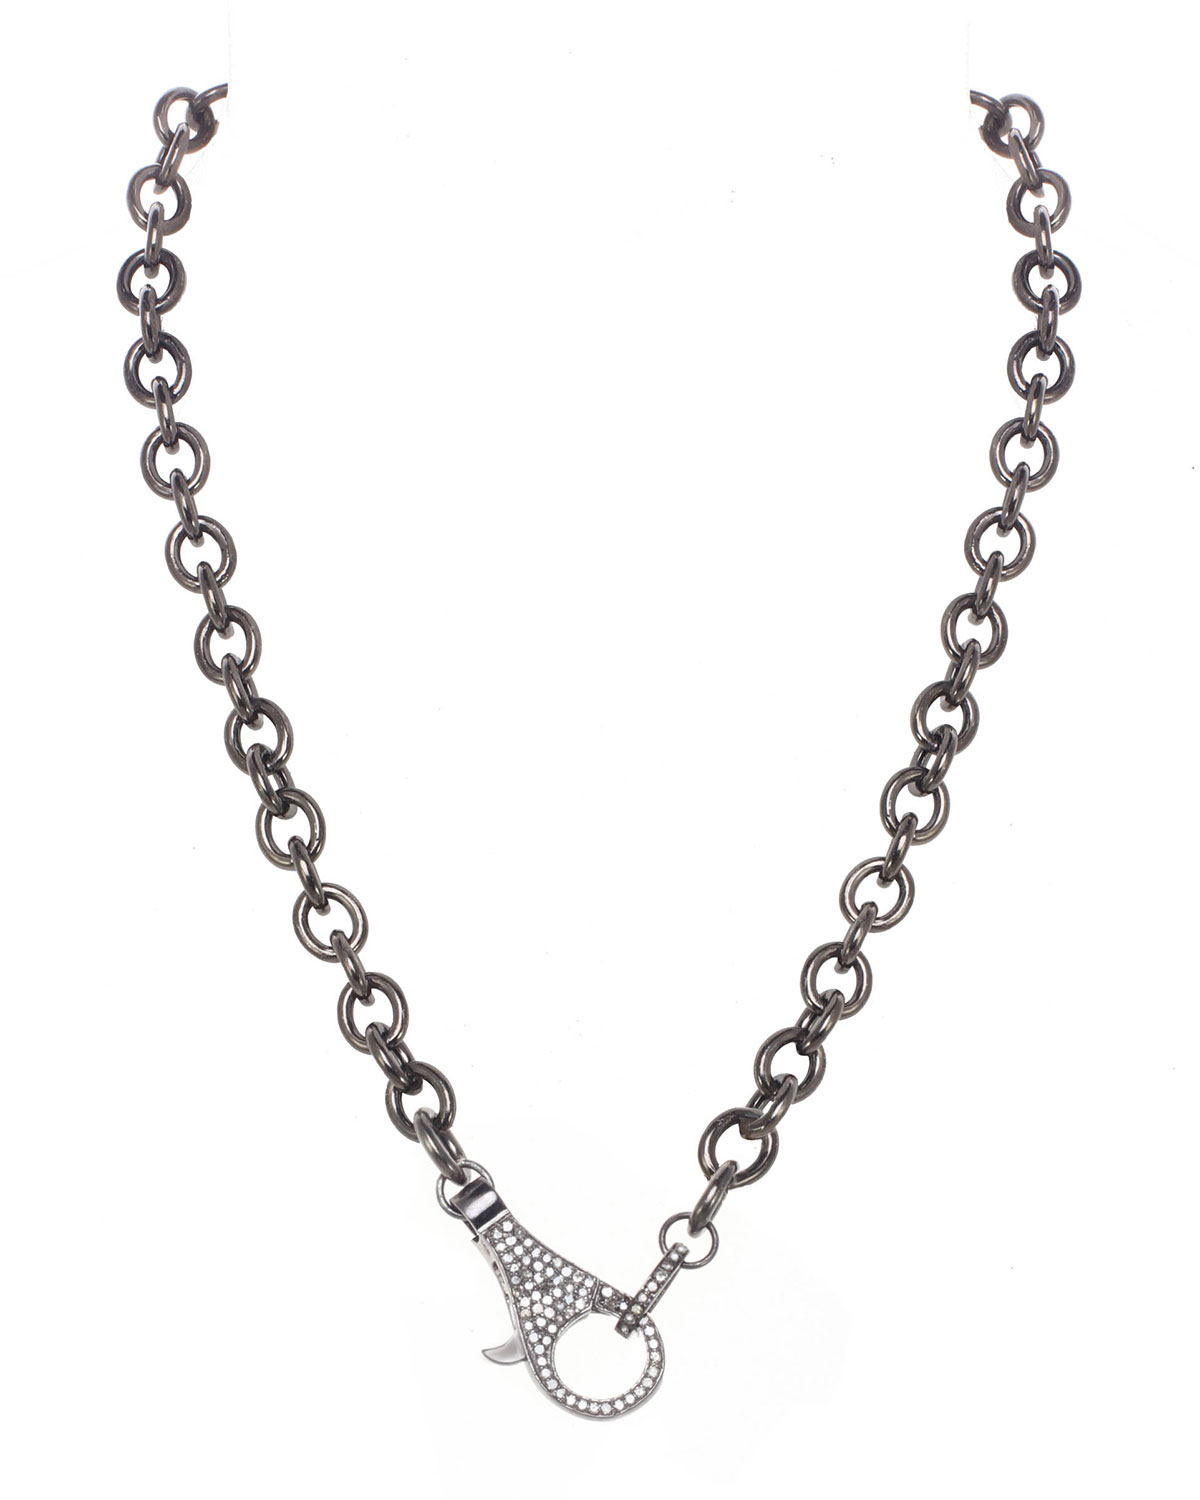 Rhodium Finish Sterling Silver Chain with Diamond Clasp